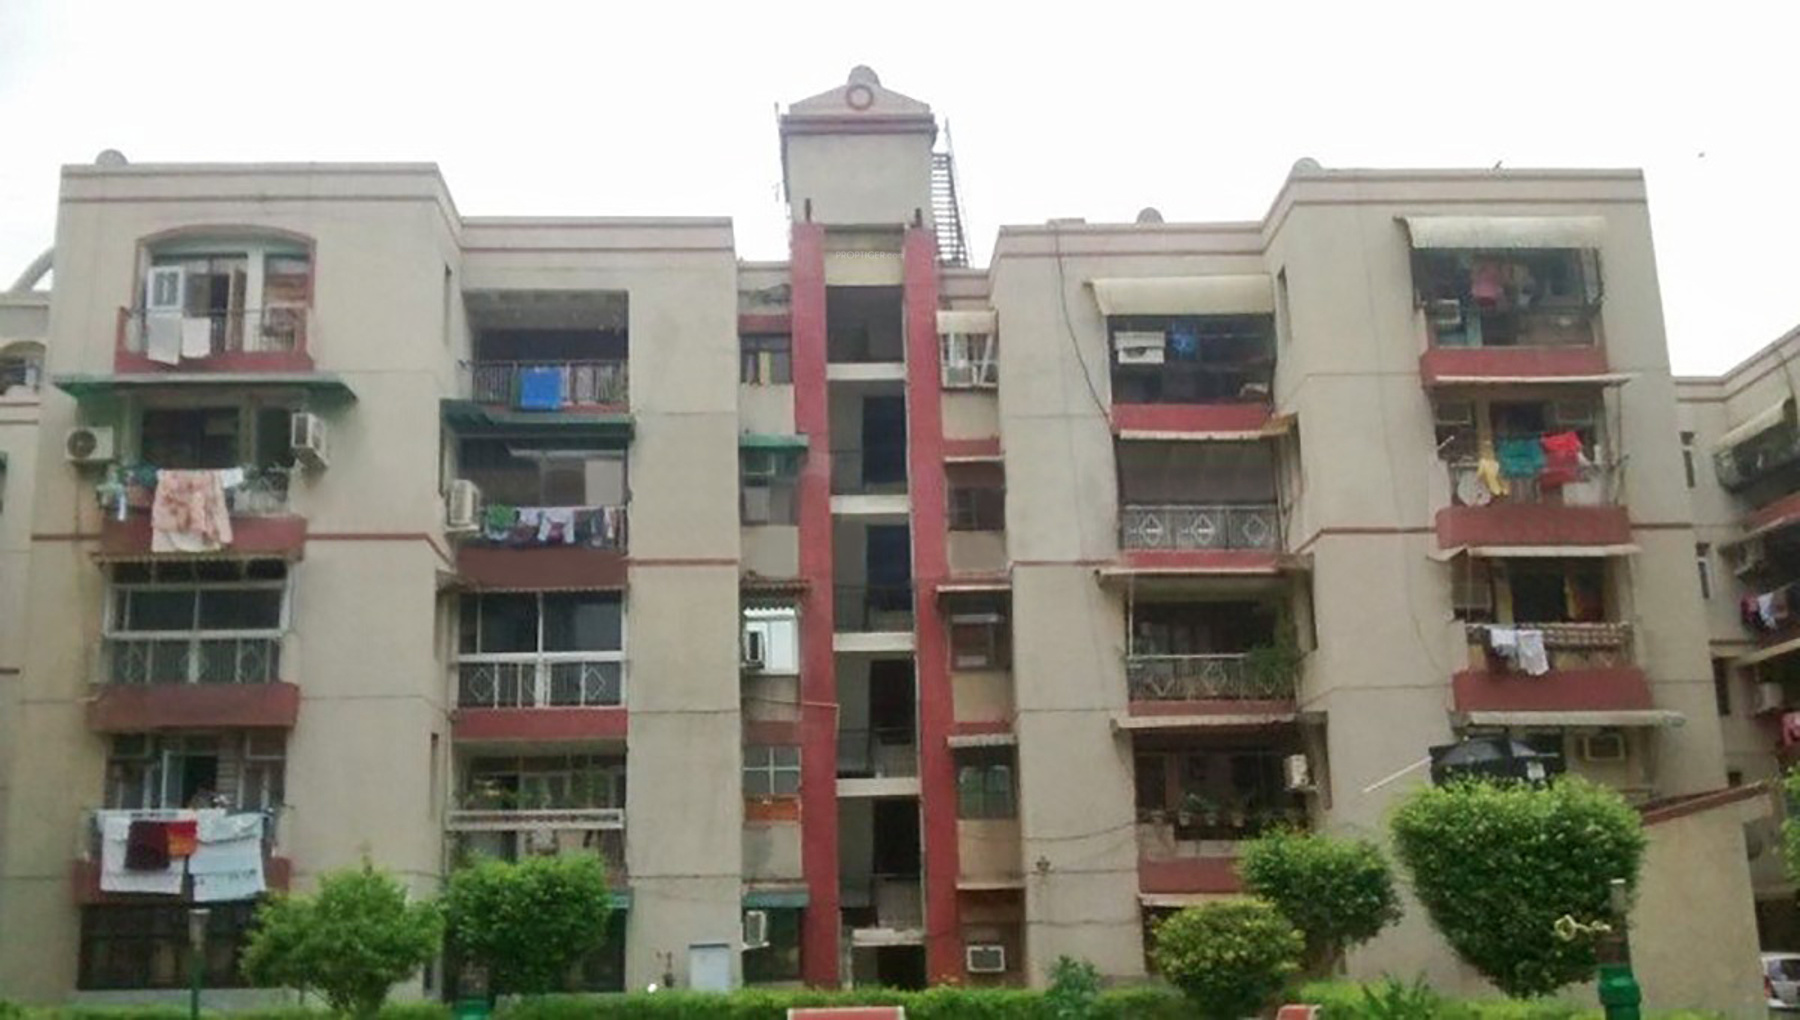 DDA Park View Apartments in Sector 12 Dwarka, Delhi - Price